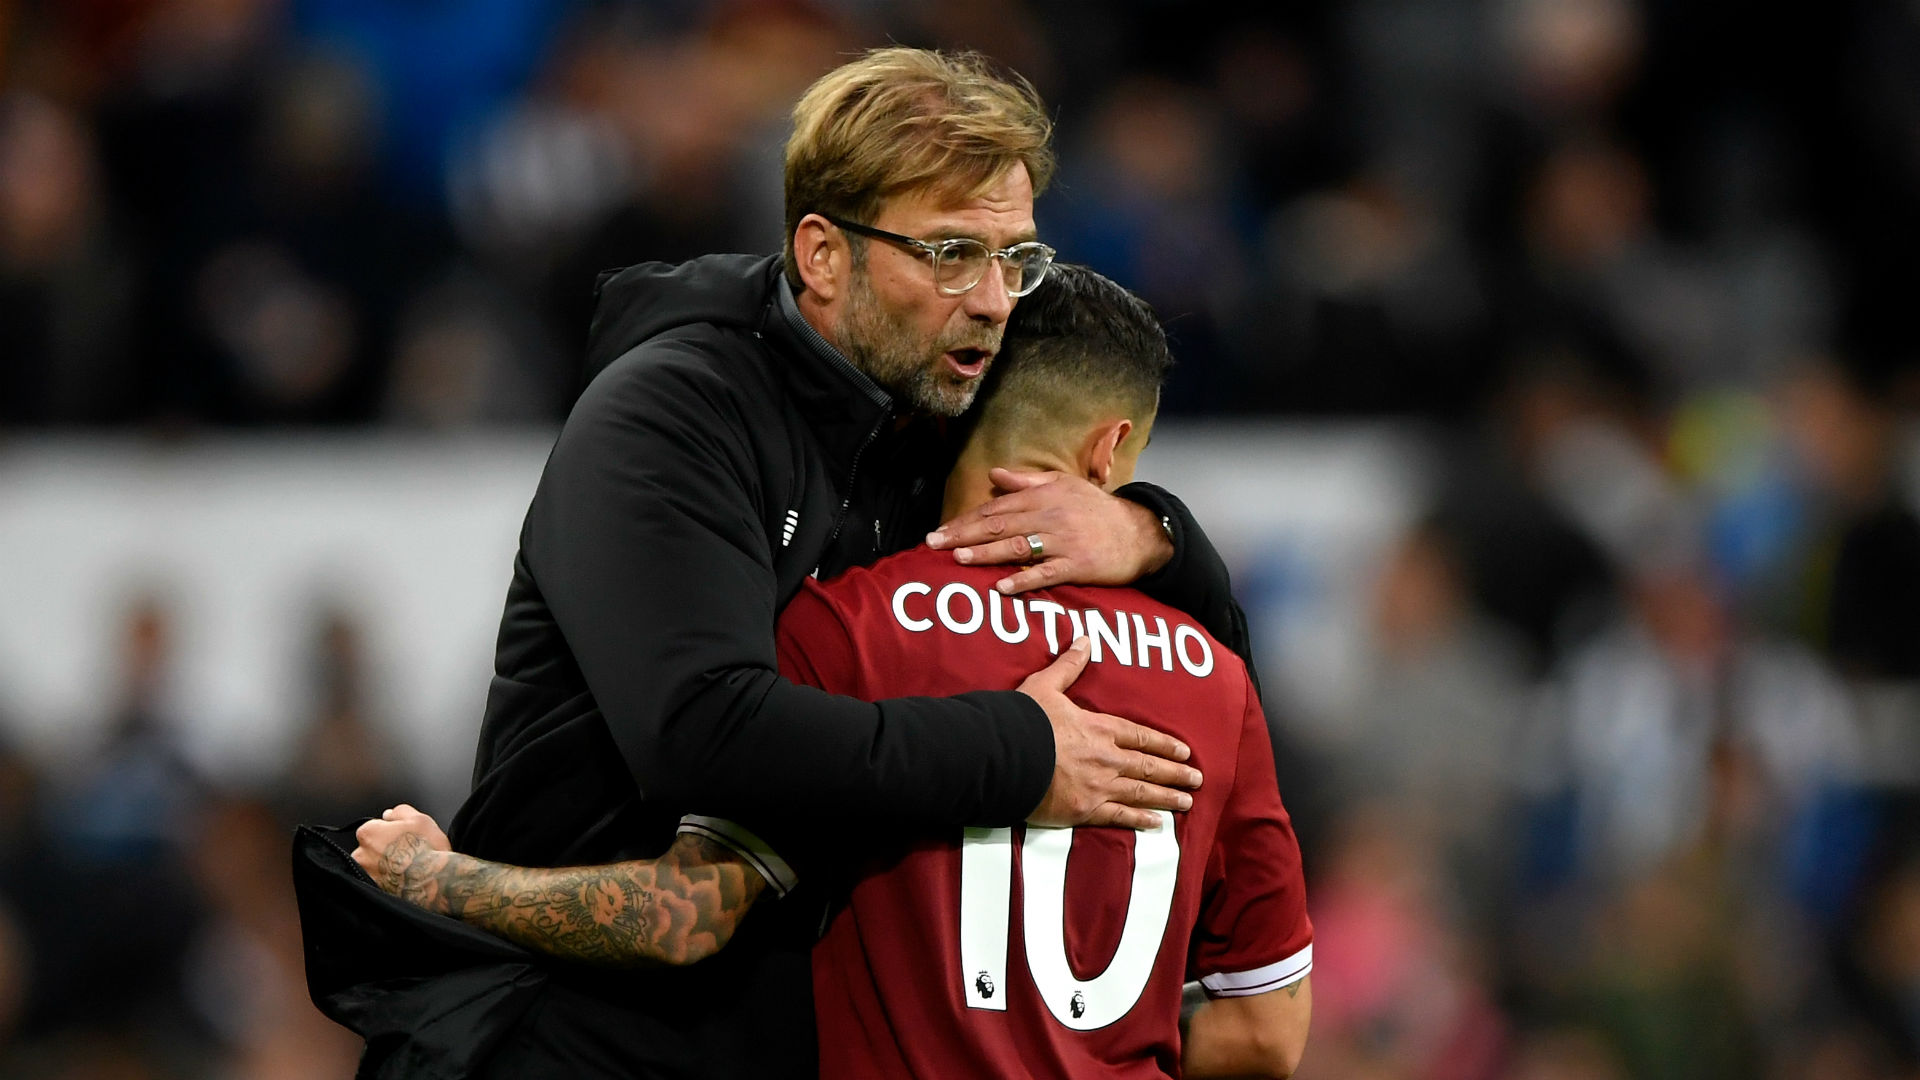 We don't make big comments on these things - Klopp unresponsive to Coutinho talk